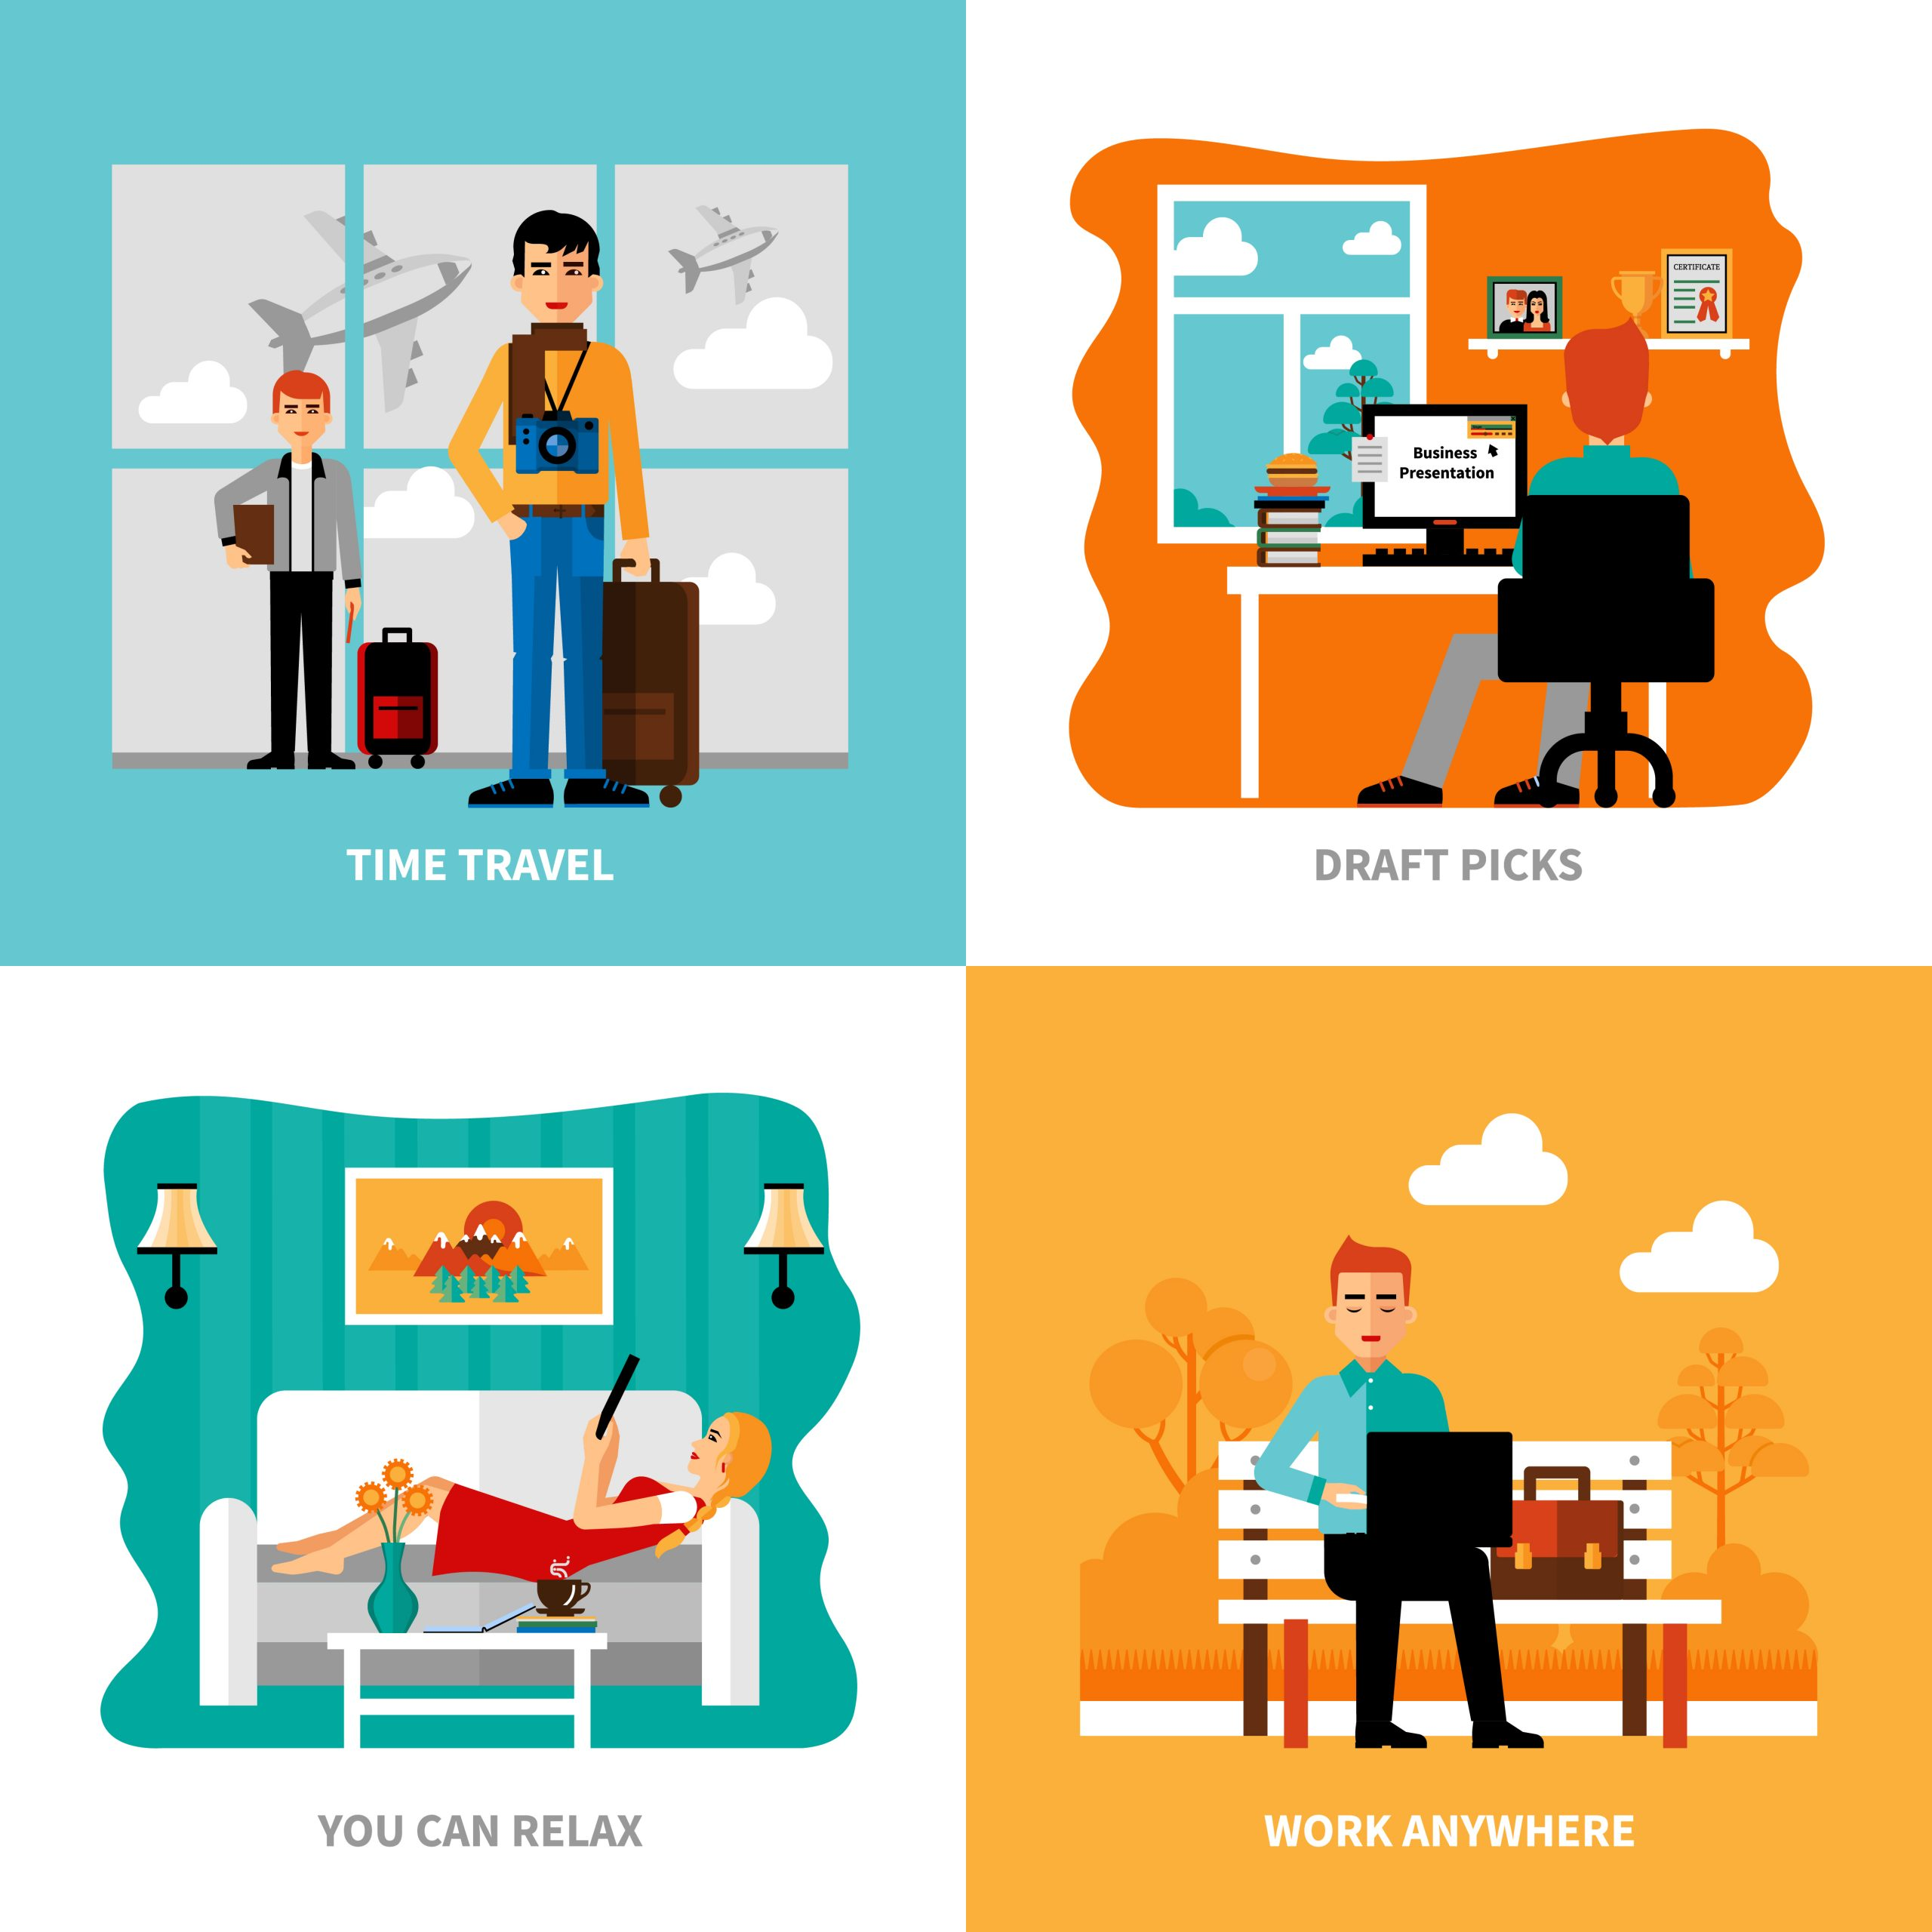 Services you can offer as a Freelancer